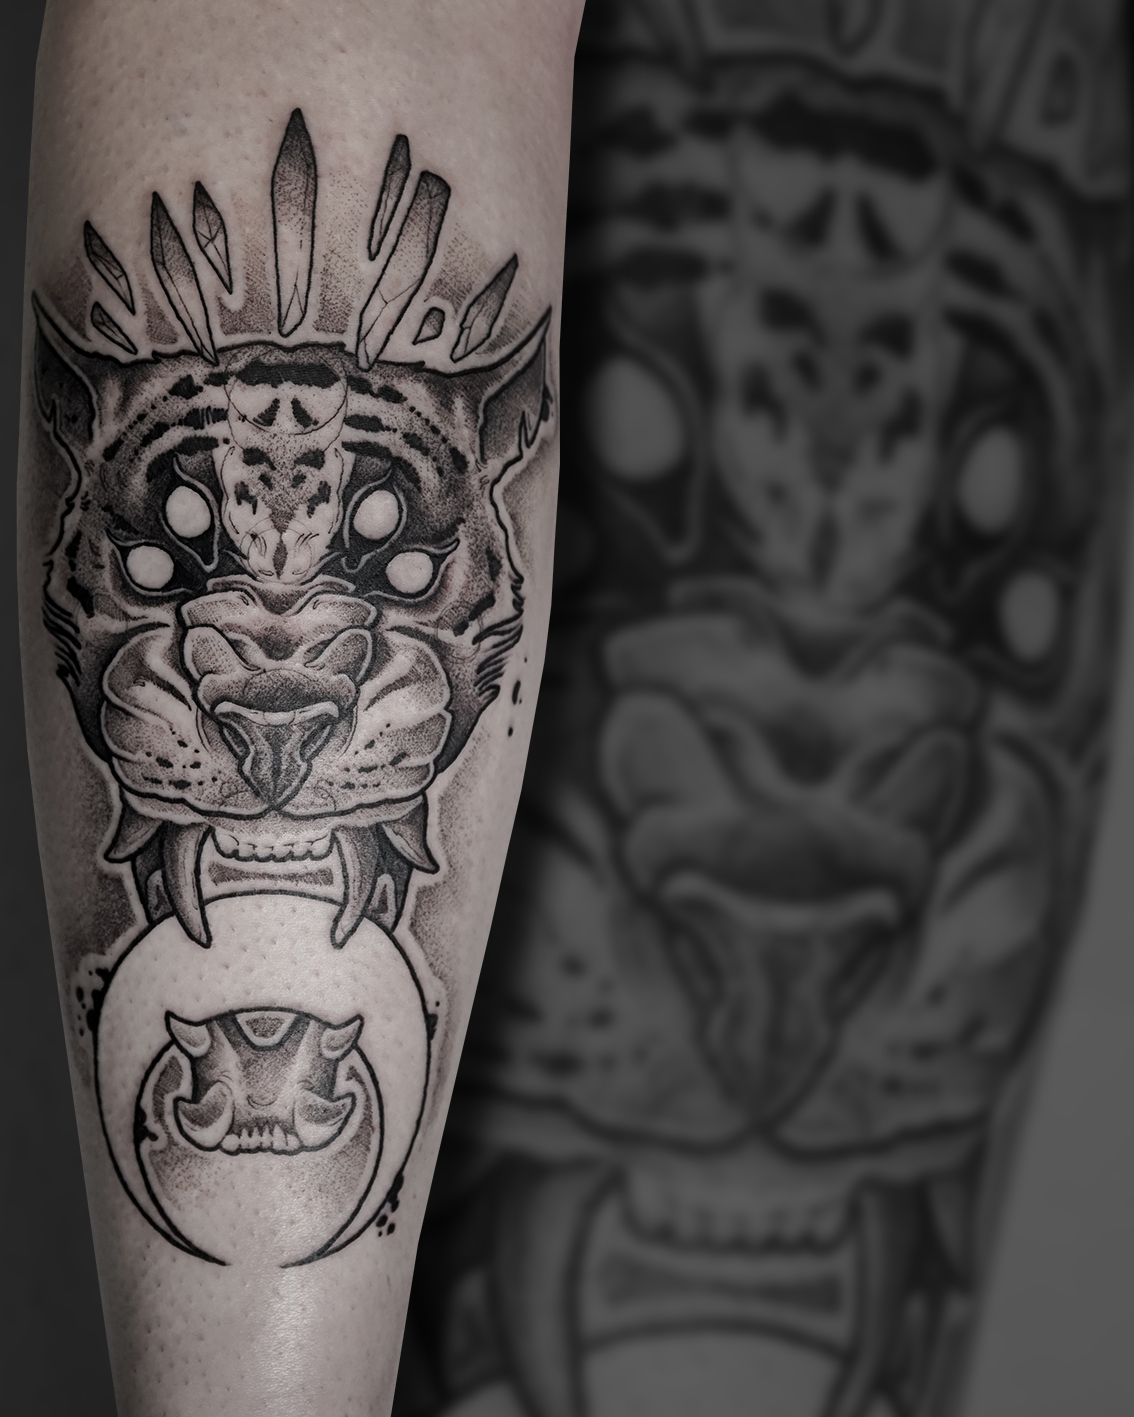 Tattoo Zincik - Tiger tattoo design